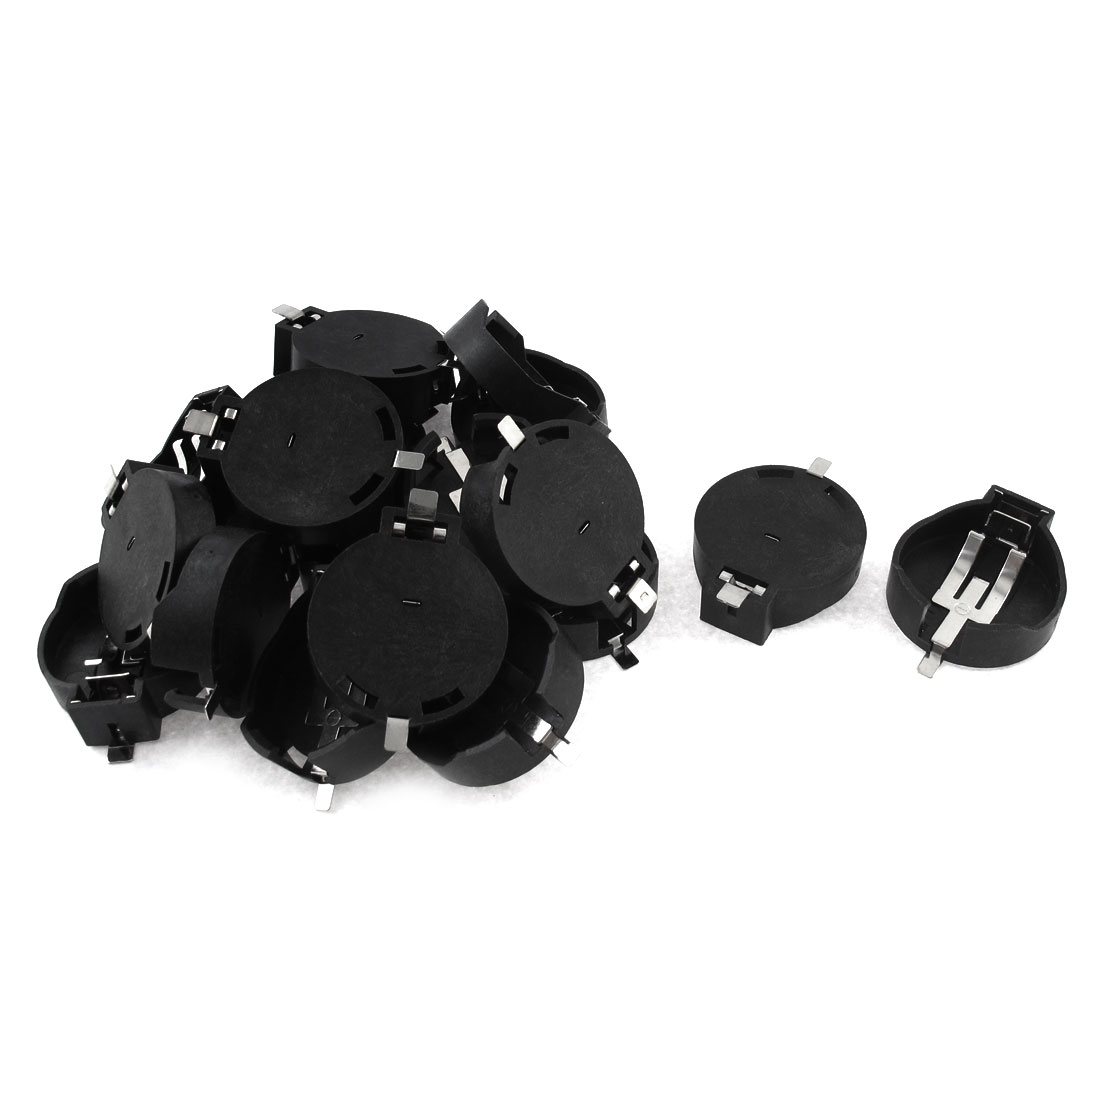 20pcs CR2450 Battery Button Coin Cell Holder Socket Case Black